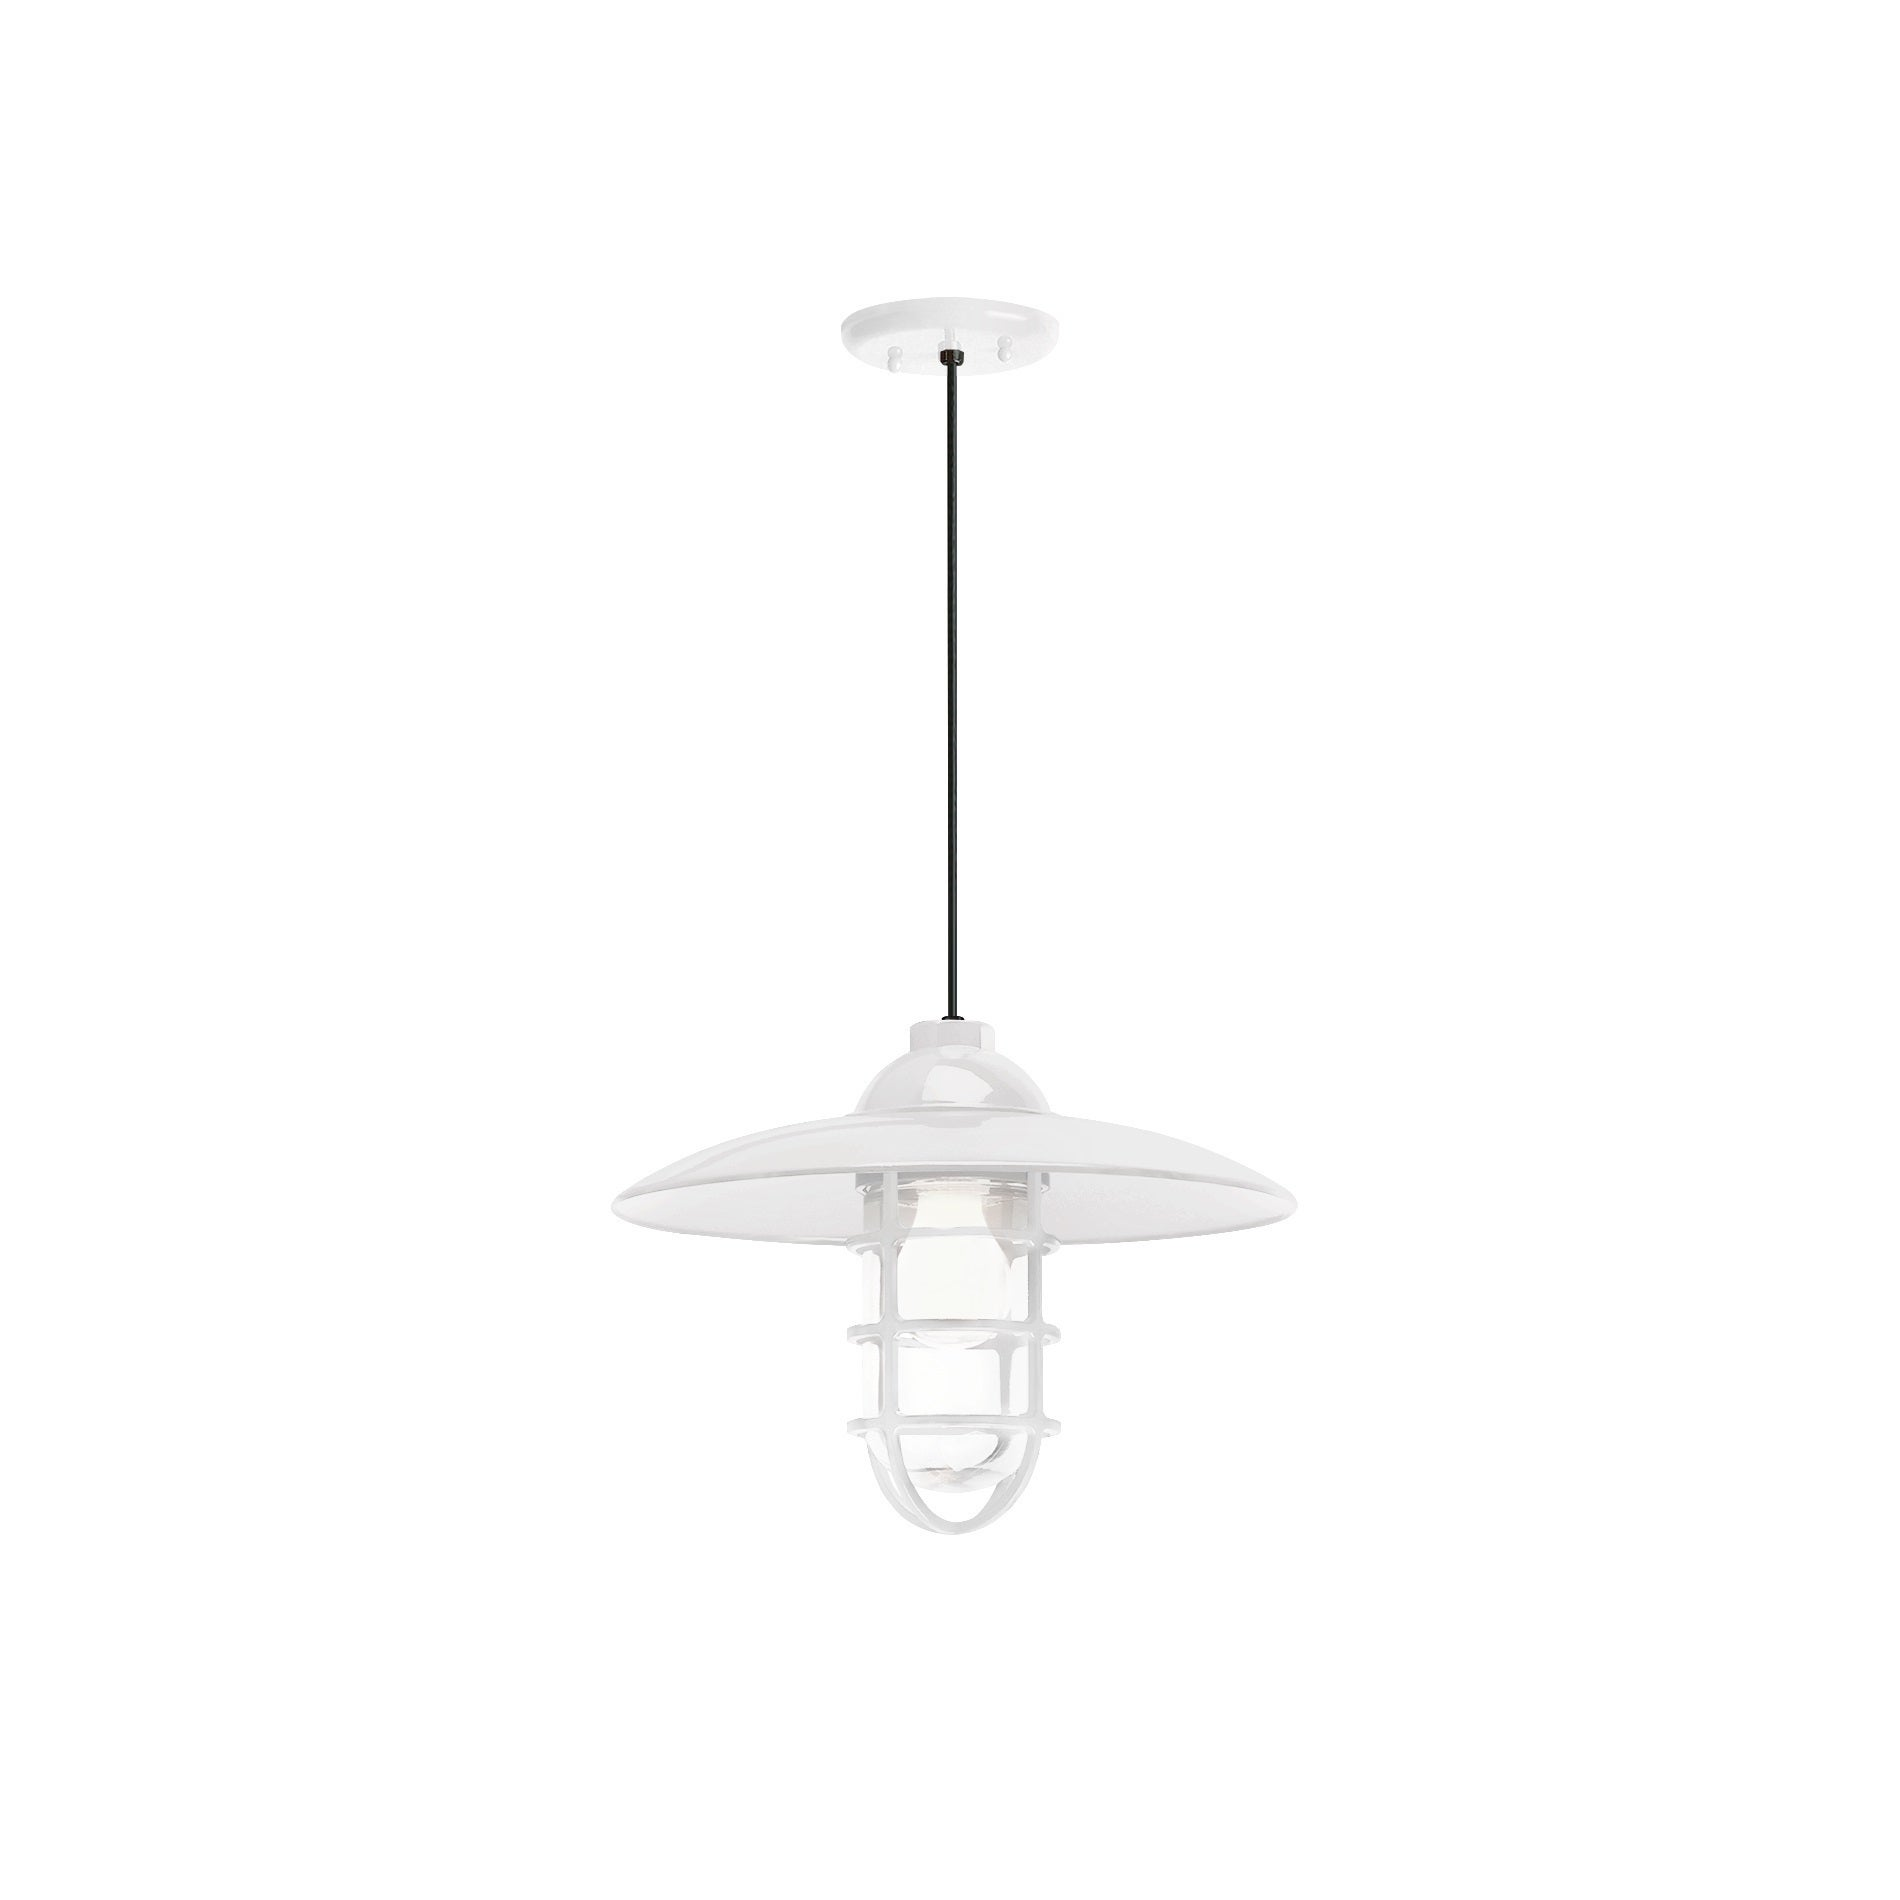 Troy rlm lighting retro industrial gloss white dome wire guard troy rlm lighting retro industrial gloss white dome wire guard pendant free shipping today overstock 19494476 arubaitofo Images